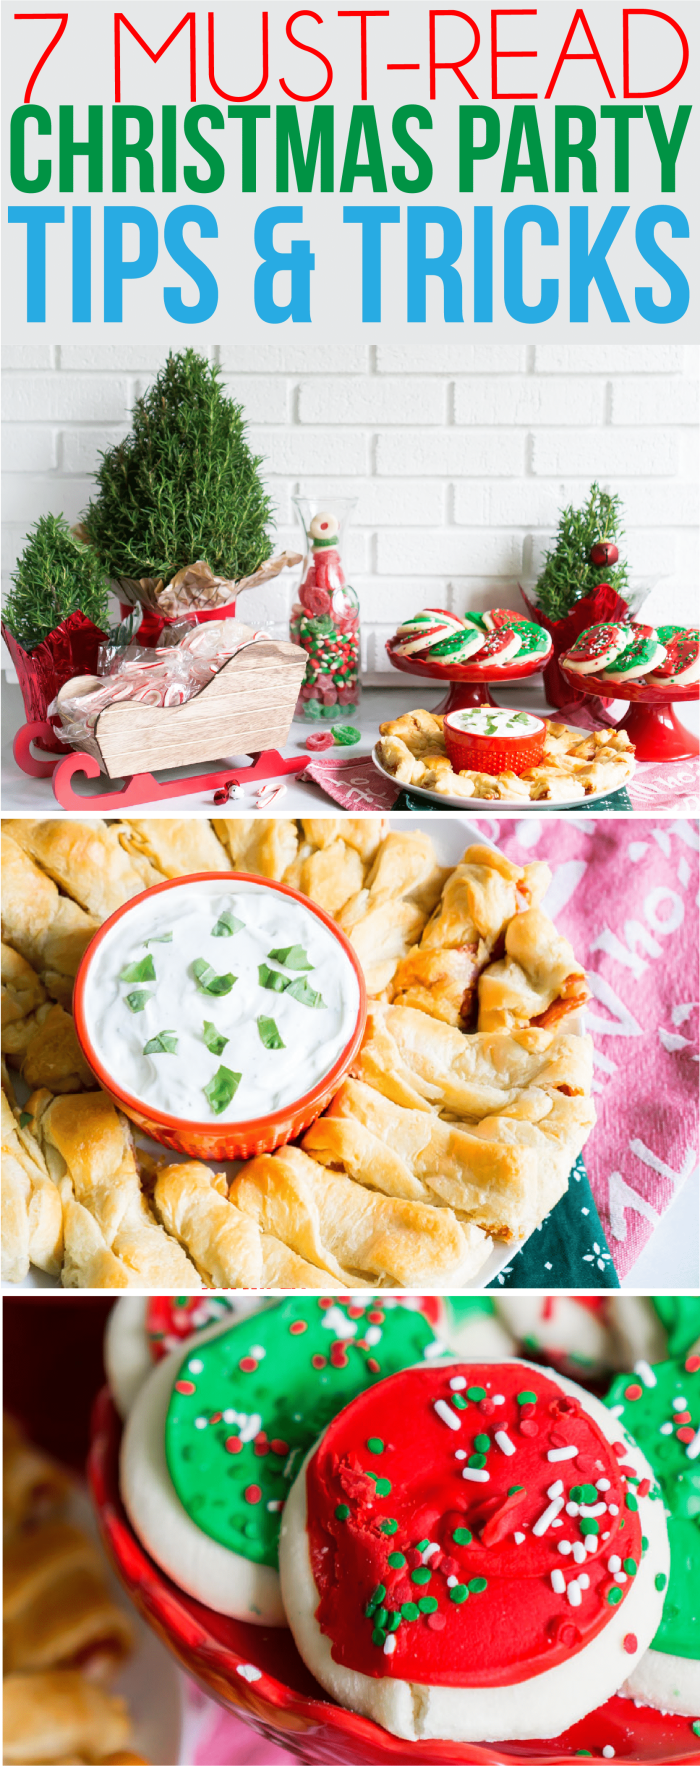 Great Christmas party ideas and tips for hosting